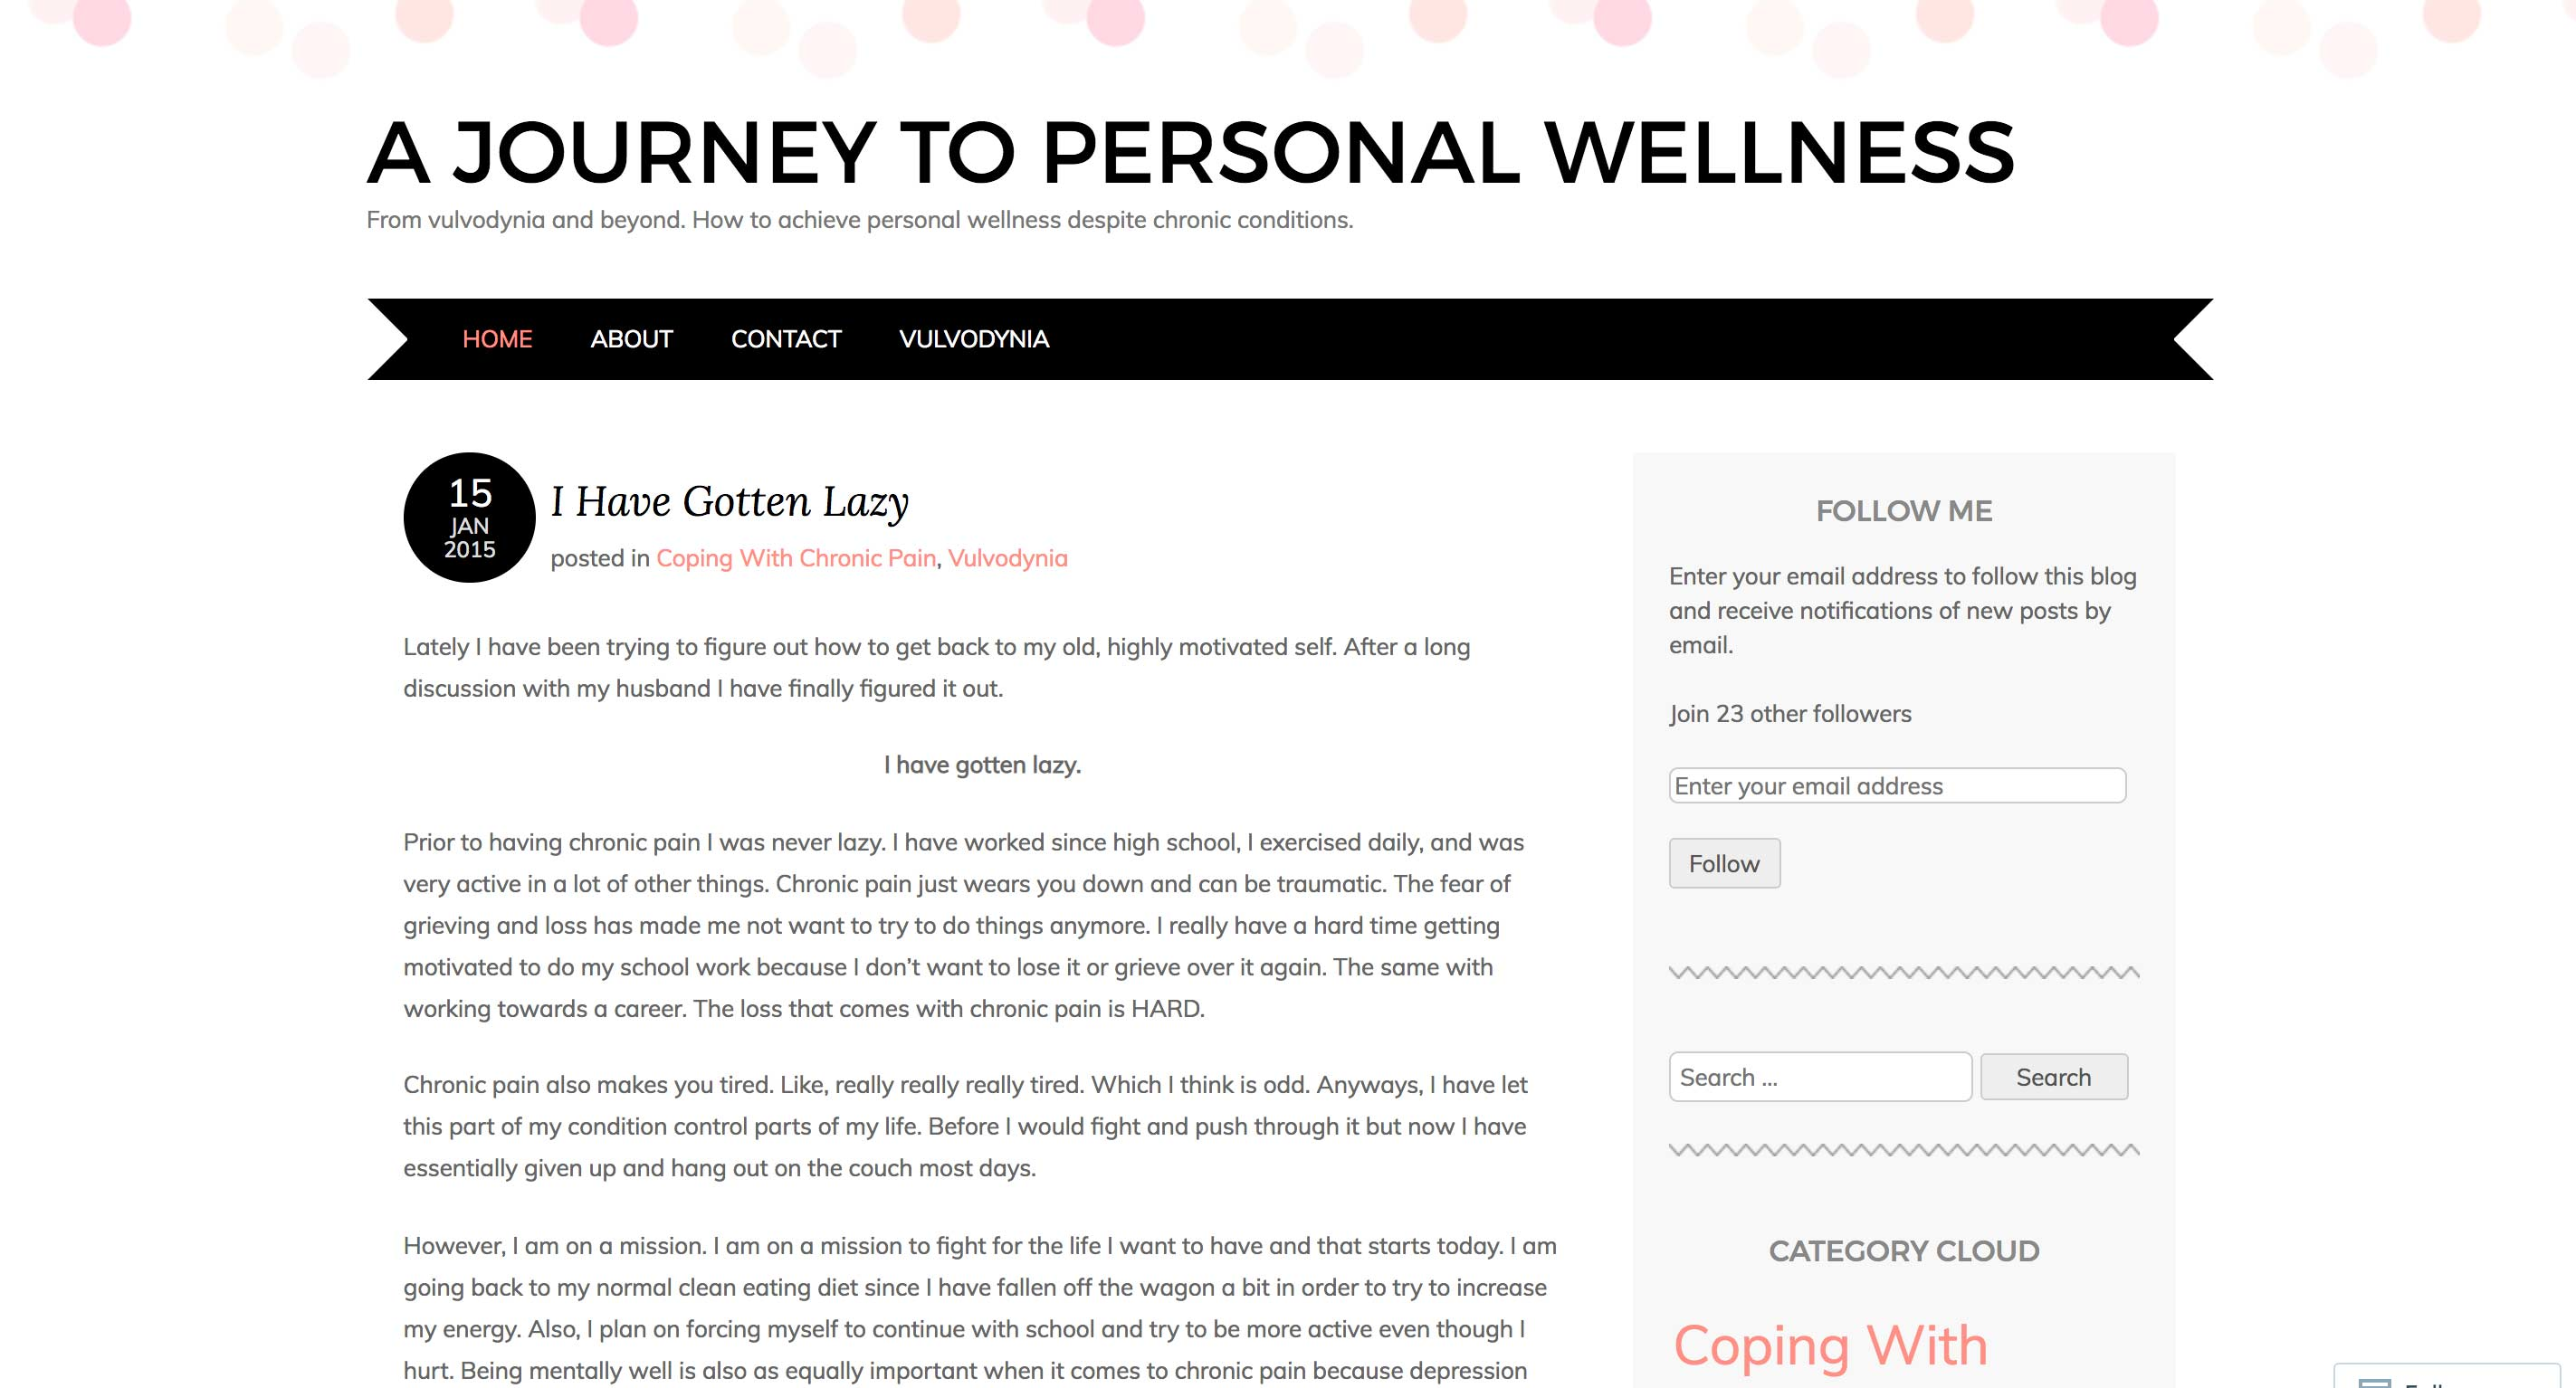 A Journal To Personal Wellness - blog about vulvodynia and chronic pain